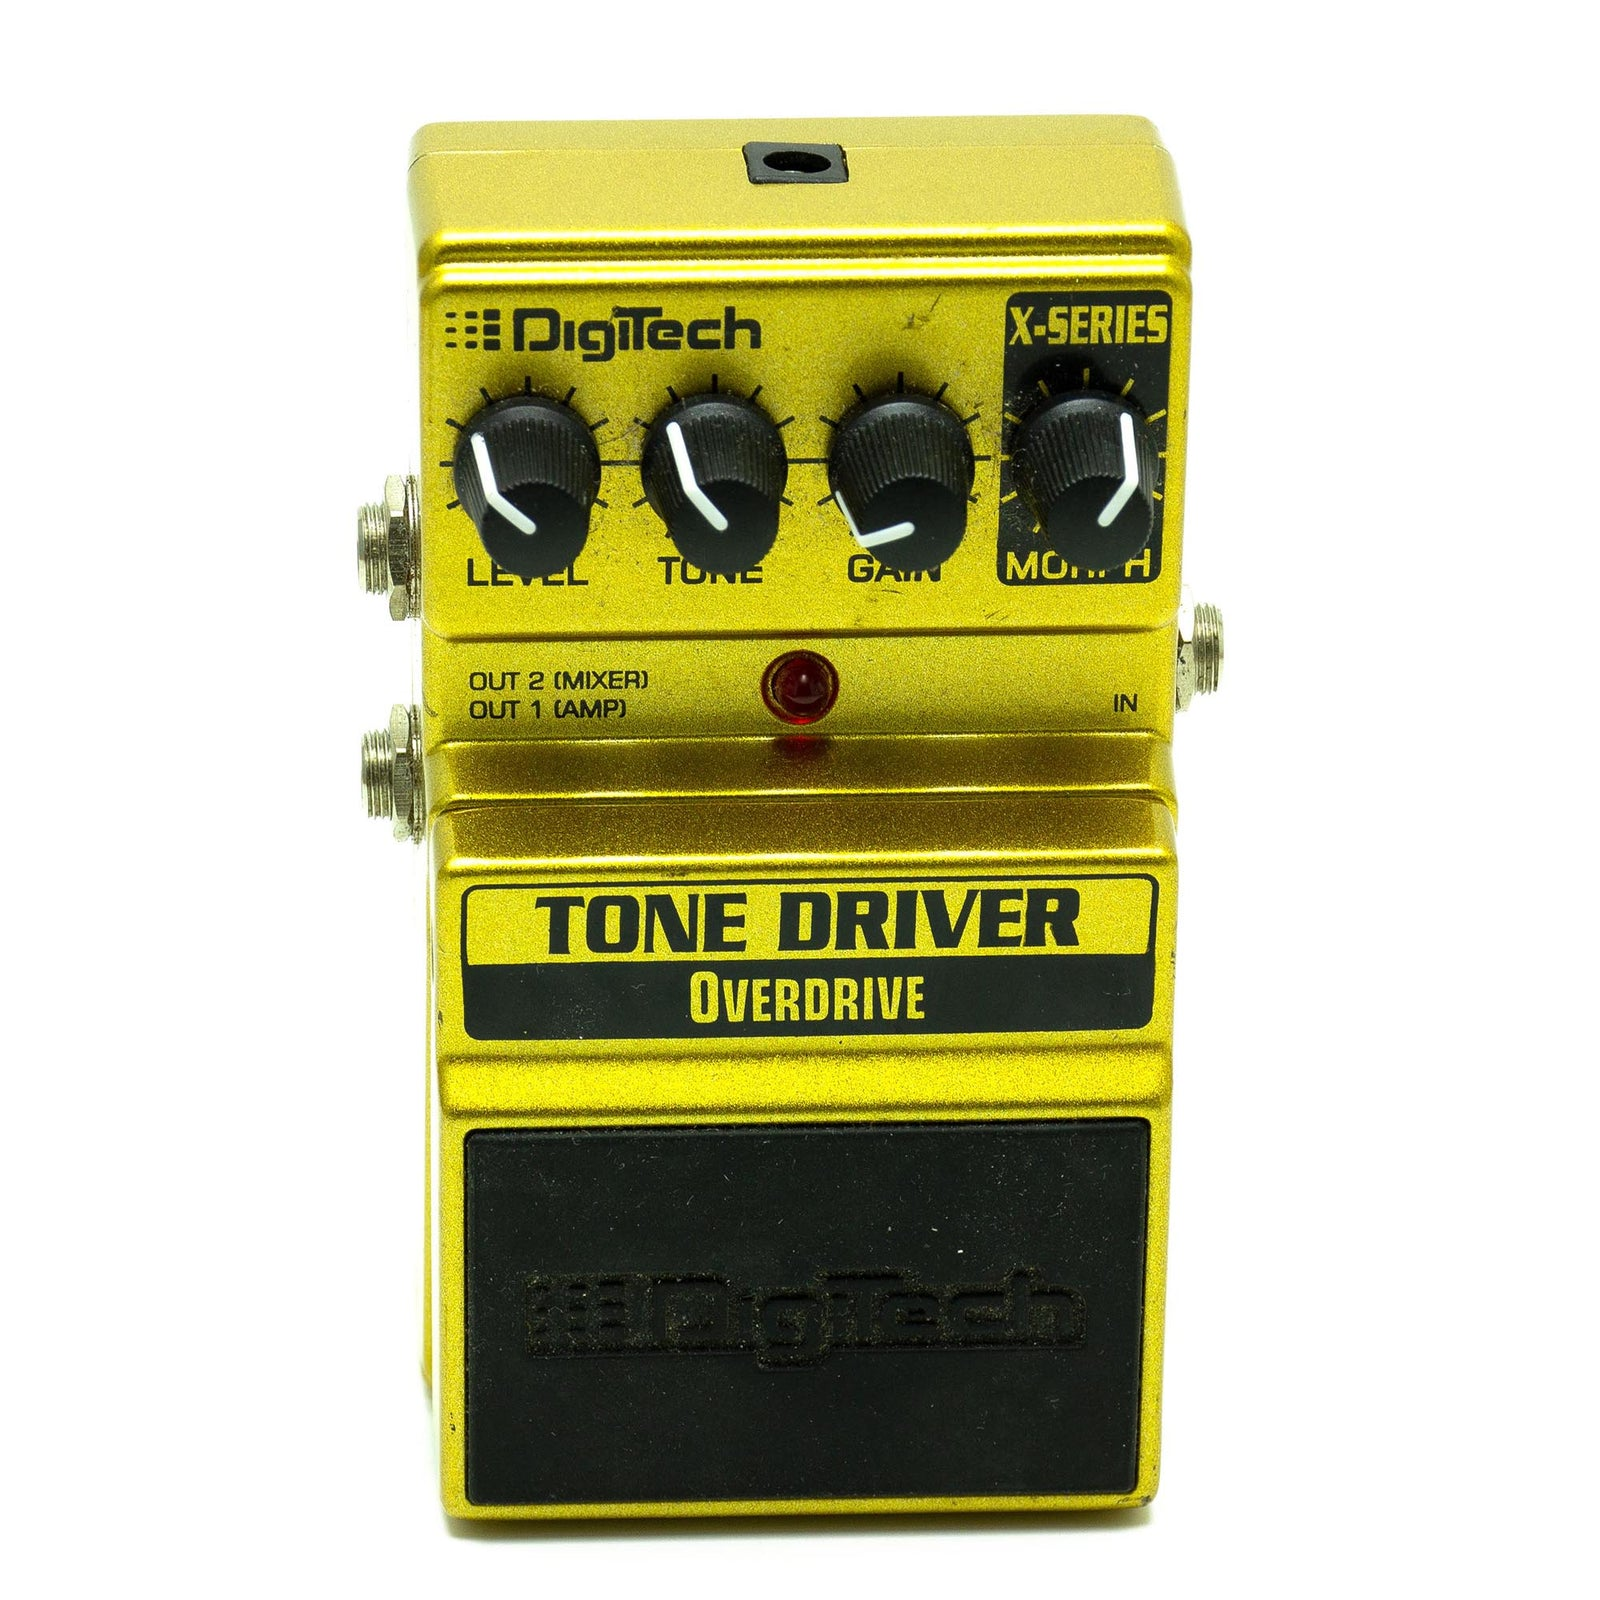 Digitech Tone Driver OD - Used